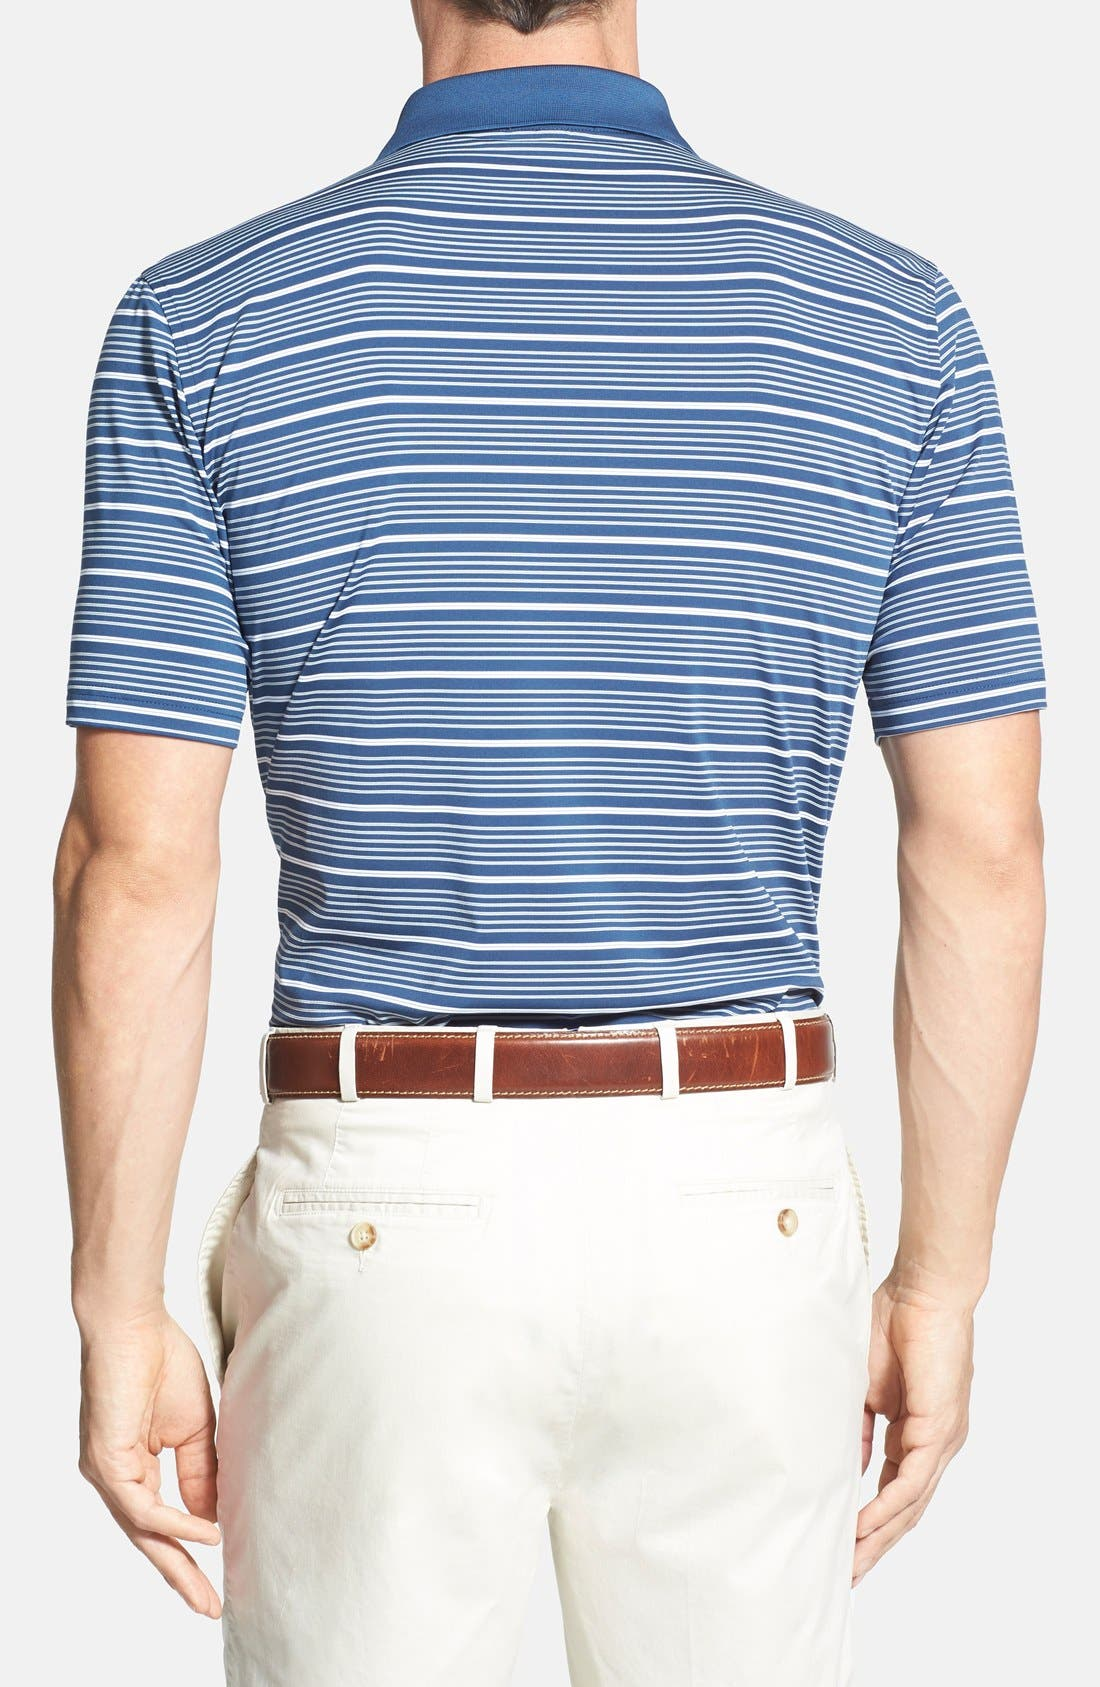 'Staley' Moisture Wicking Polo,                             Alternate thumbnail 3, color,                             402